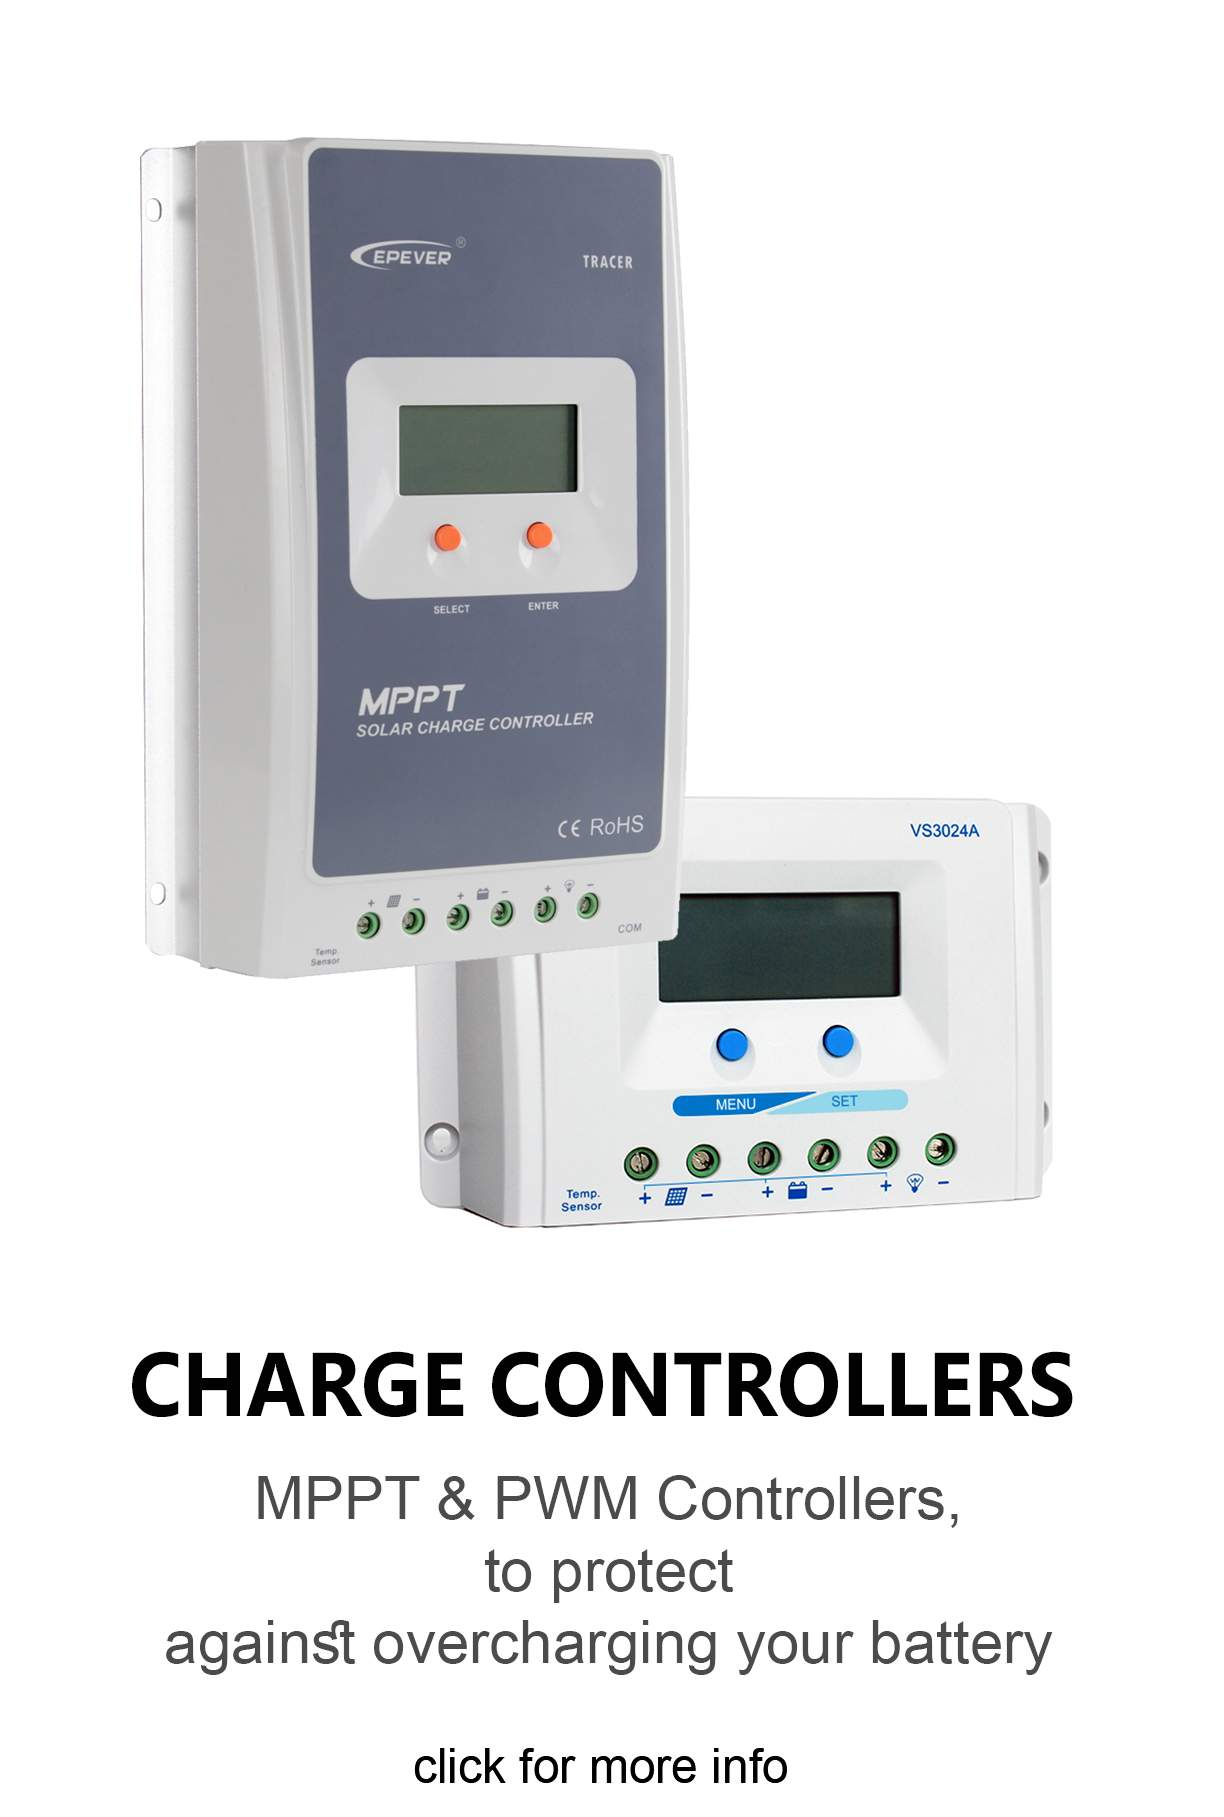 PV Solar charge controllers Bloemfontein south Africa, solar controller for sale Bloemfontein, mppt solar charge controller price in Bloemfontein south africa, pwm solar charge controller Bloemfontein, epever mppt controller Bloemfontein south africa for sale.